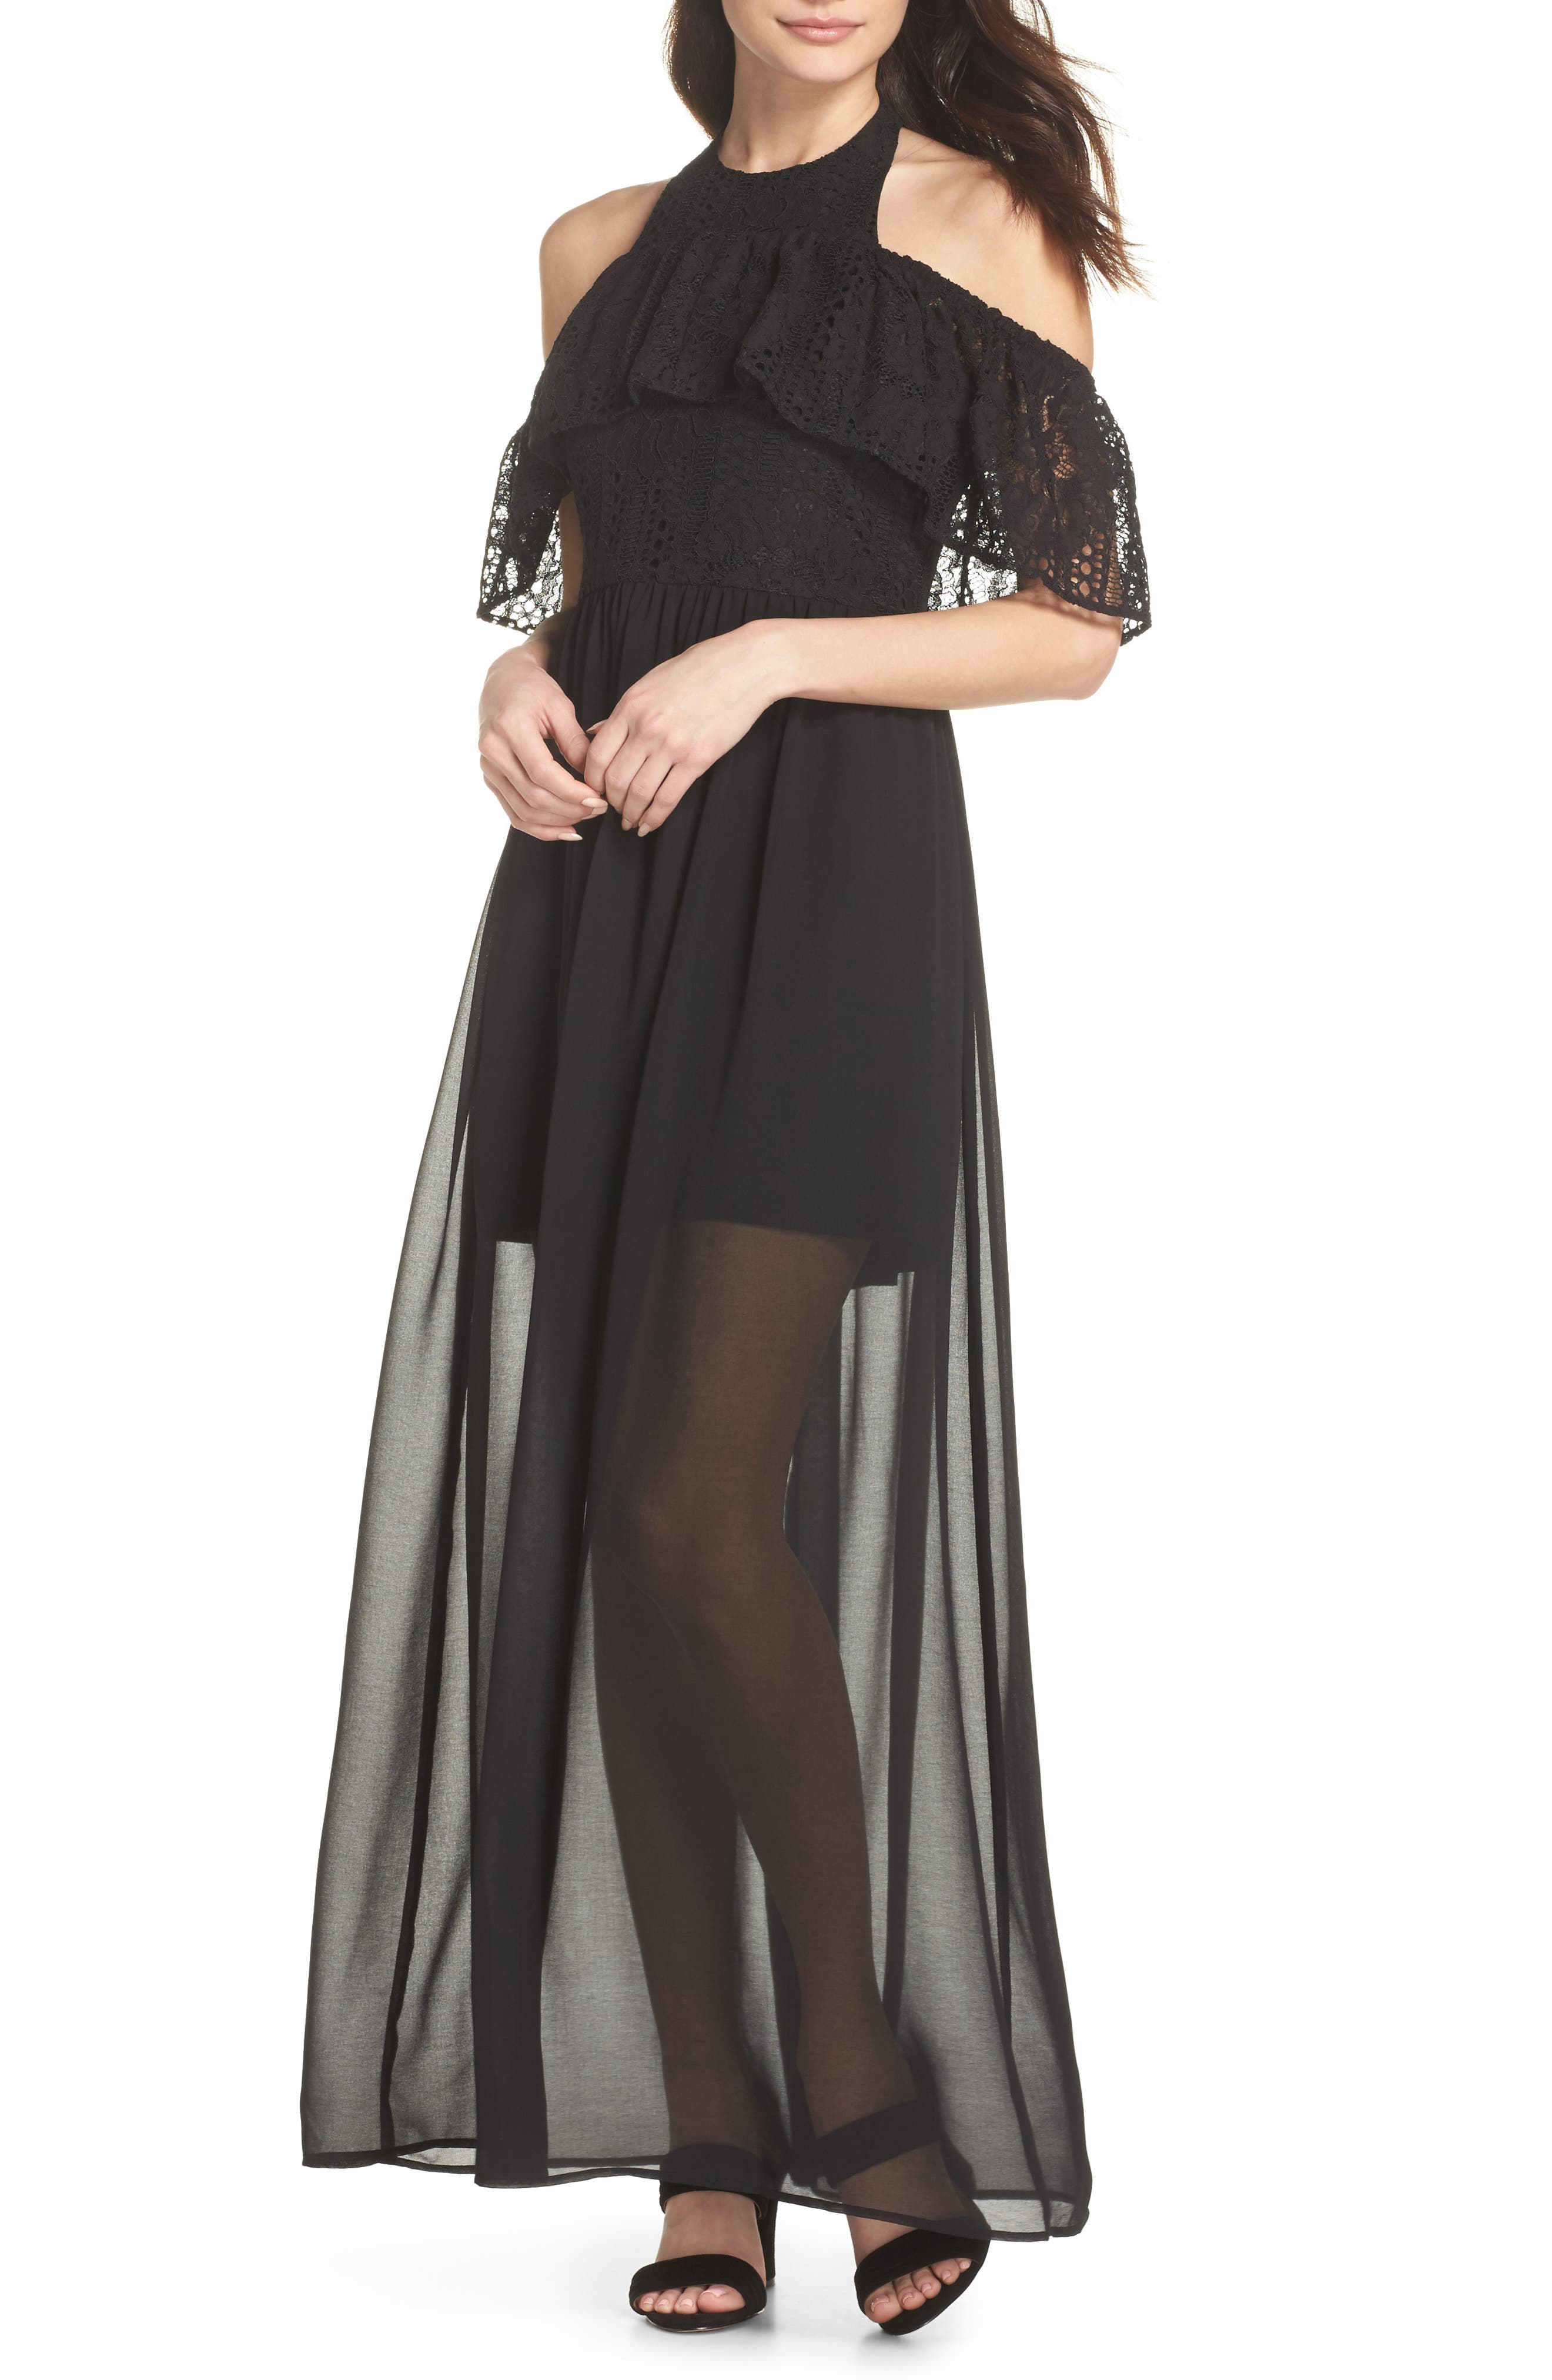 Alternate Image 1 Selected - Ali & Jay One Hand One Heart Cold Shoulder Maxi Dress